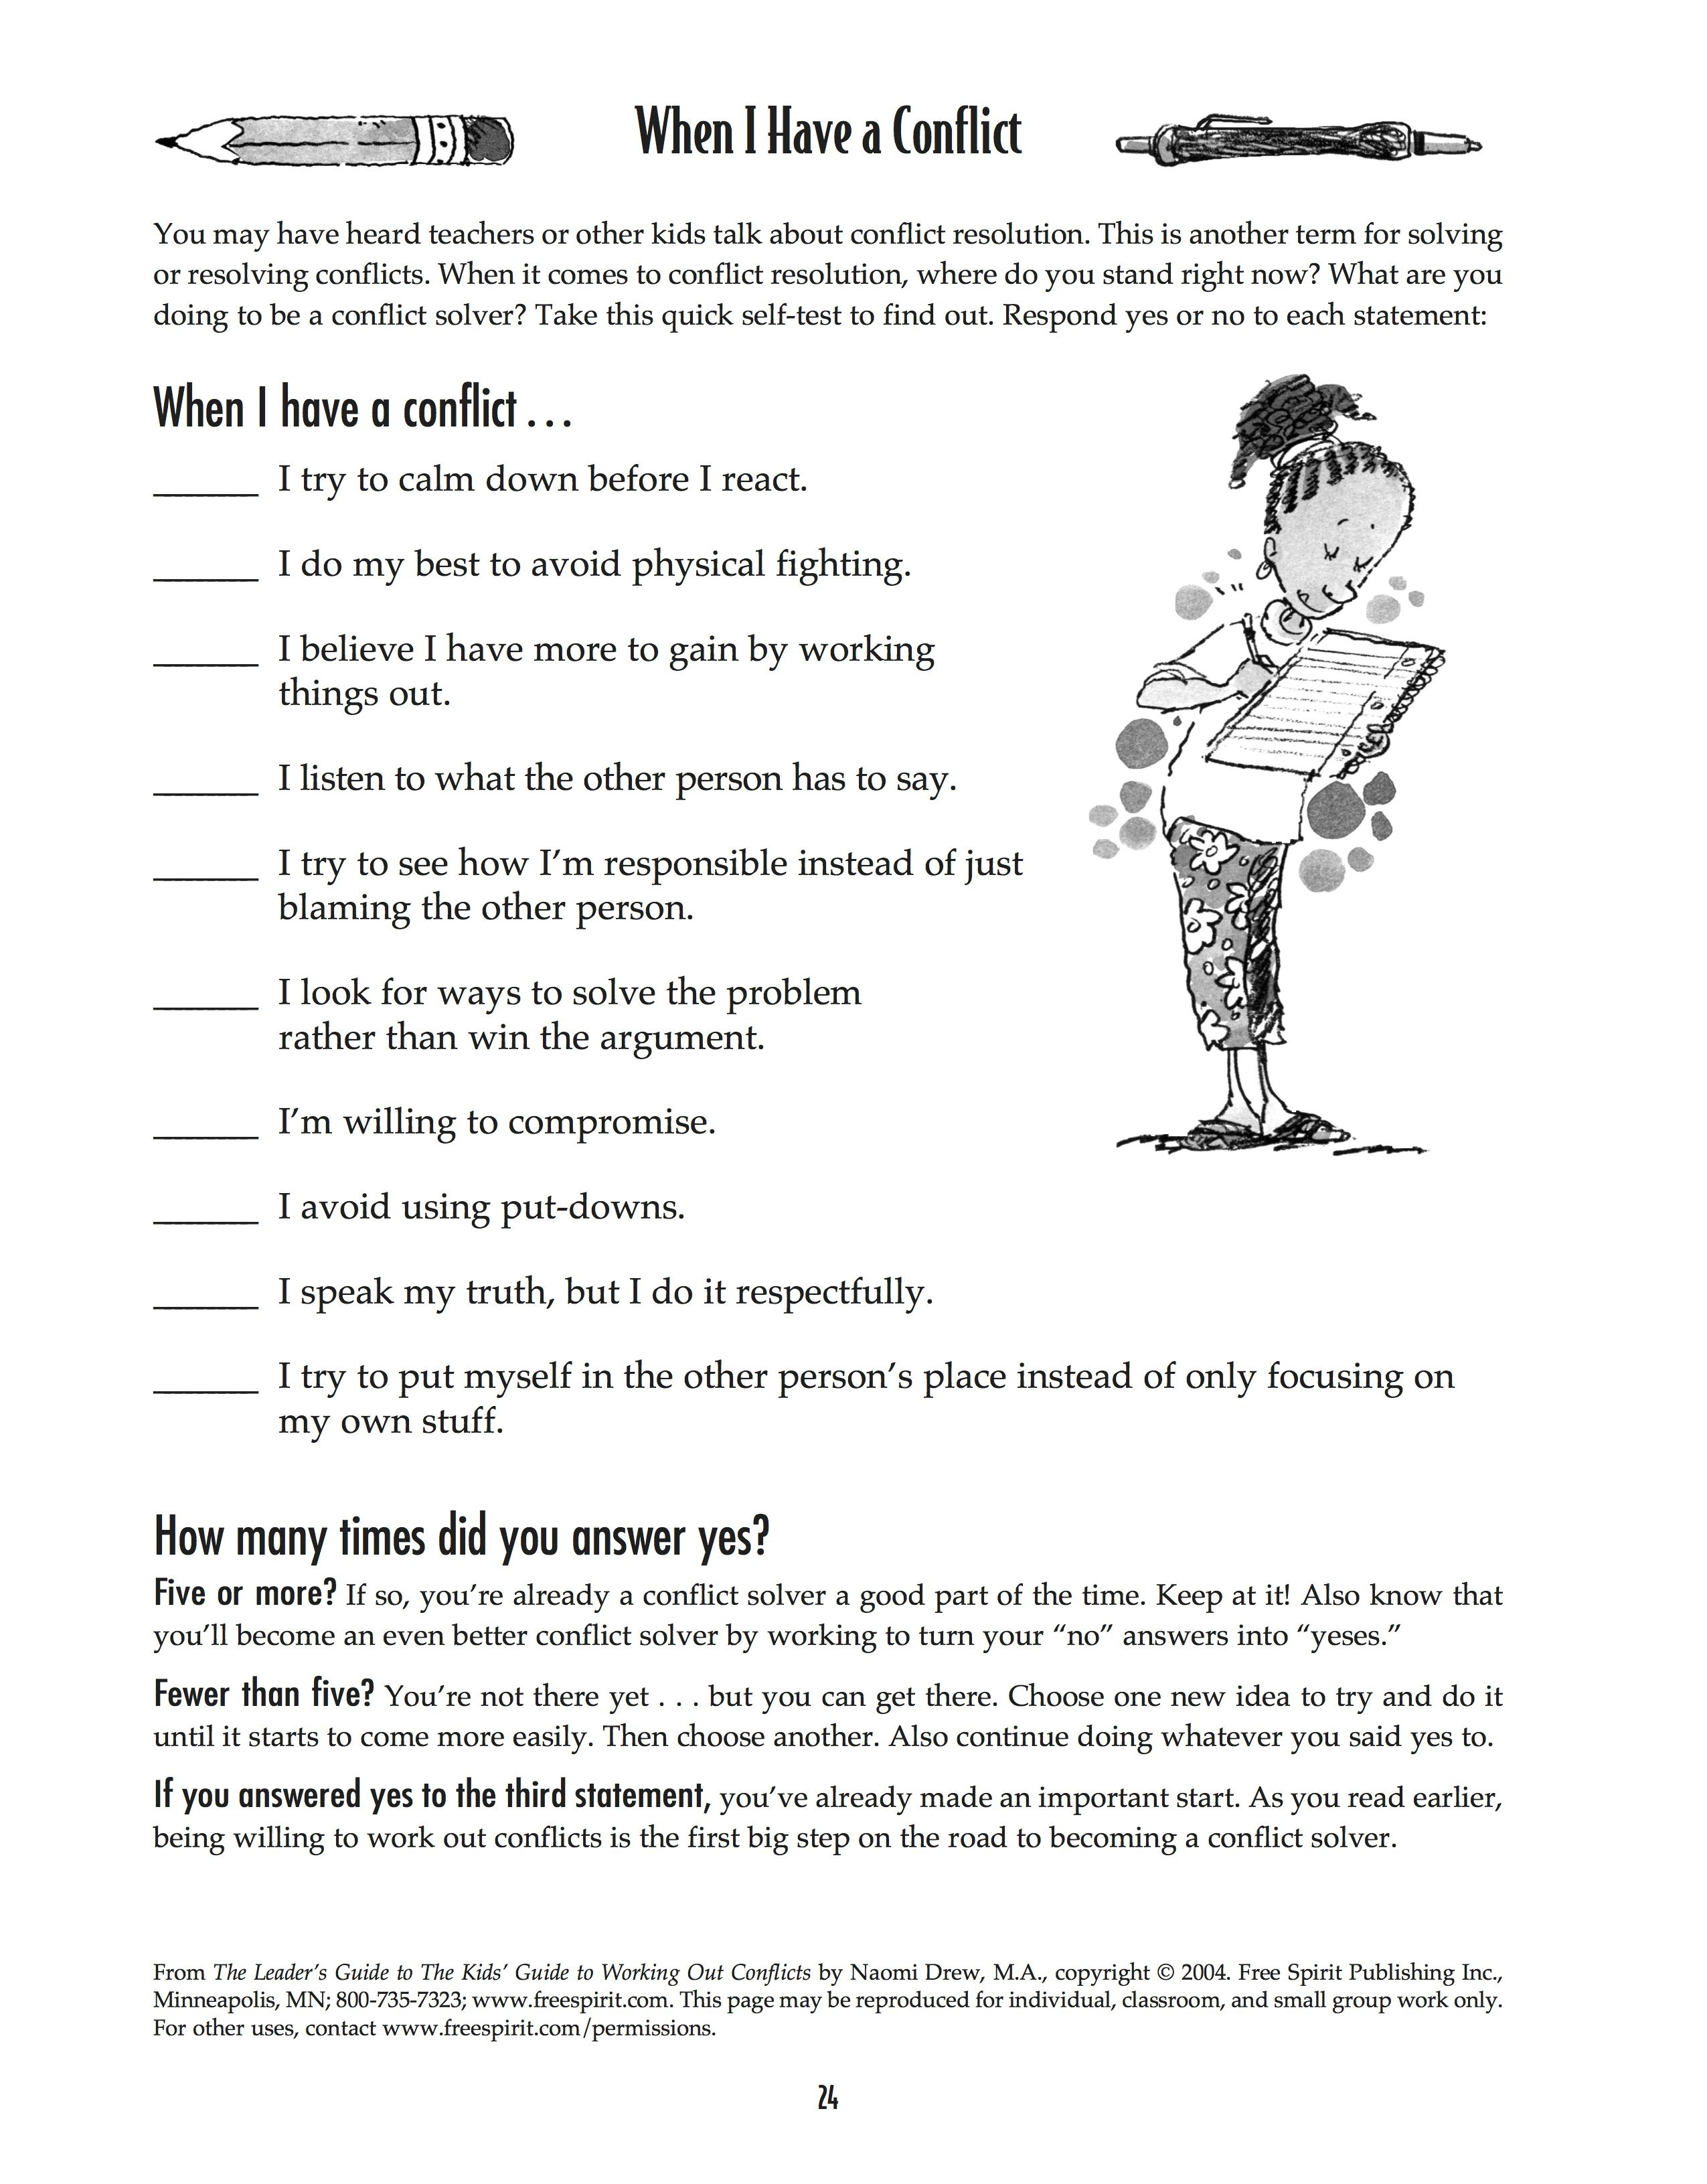 Free Printable Worksheet: When I Have A Conflict. A Quick Self-Test - Free Printable Coping Skills Worksheets For Adults